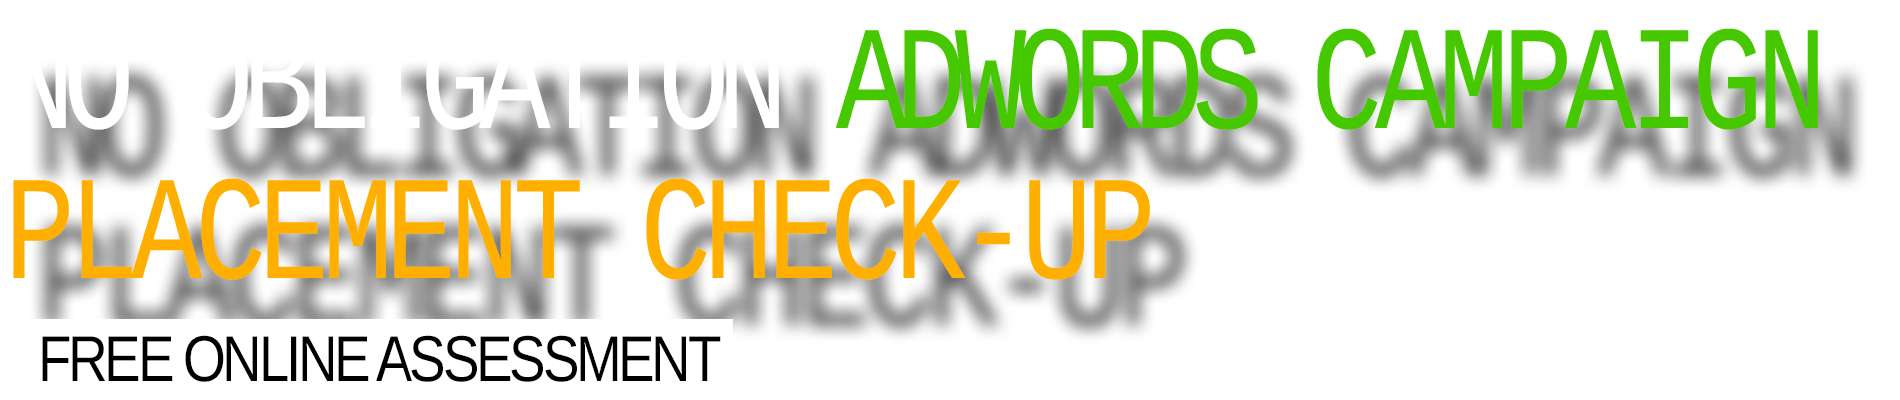 No Obligation AdWords Campaign Placement Check-Up